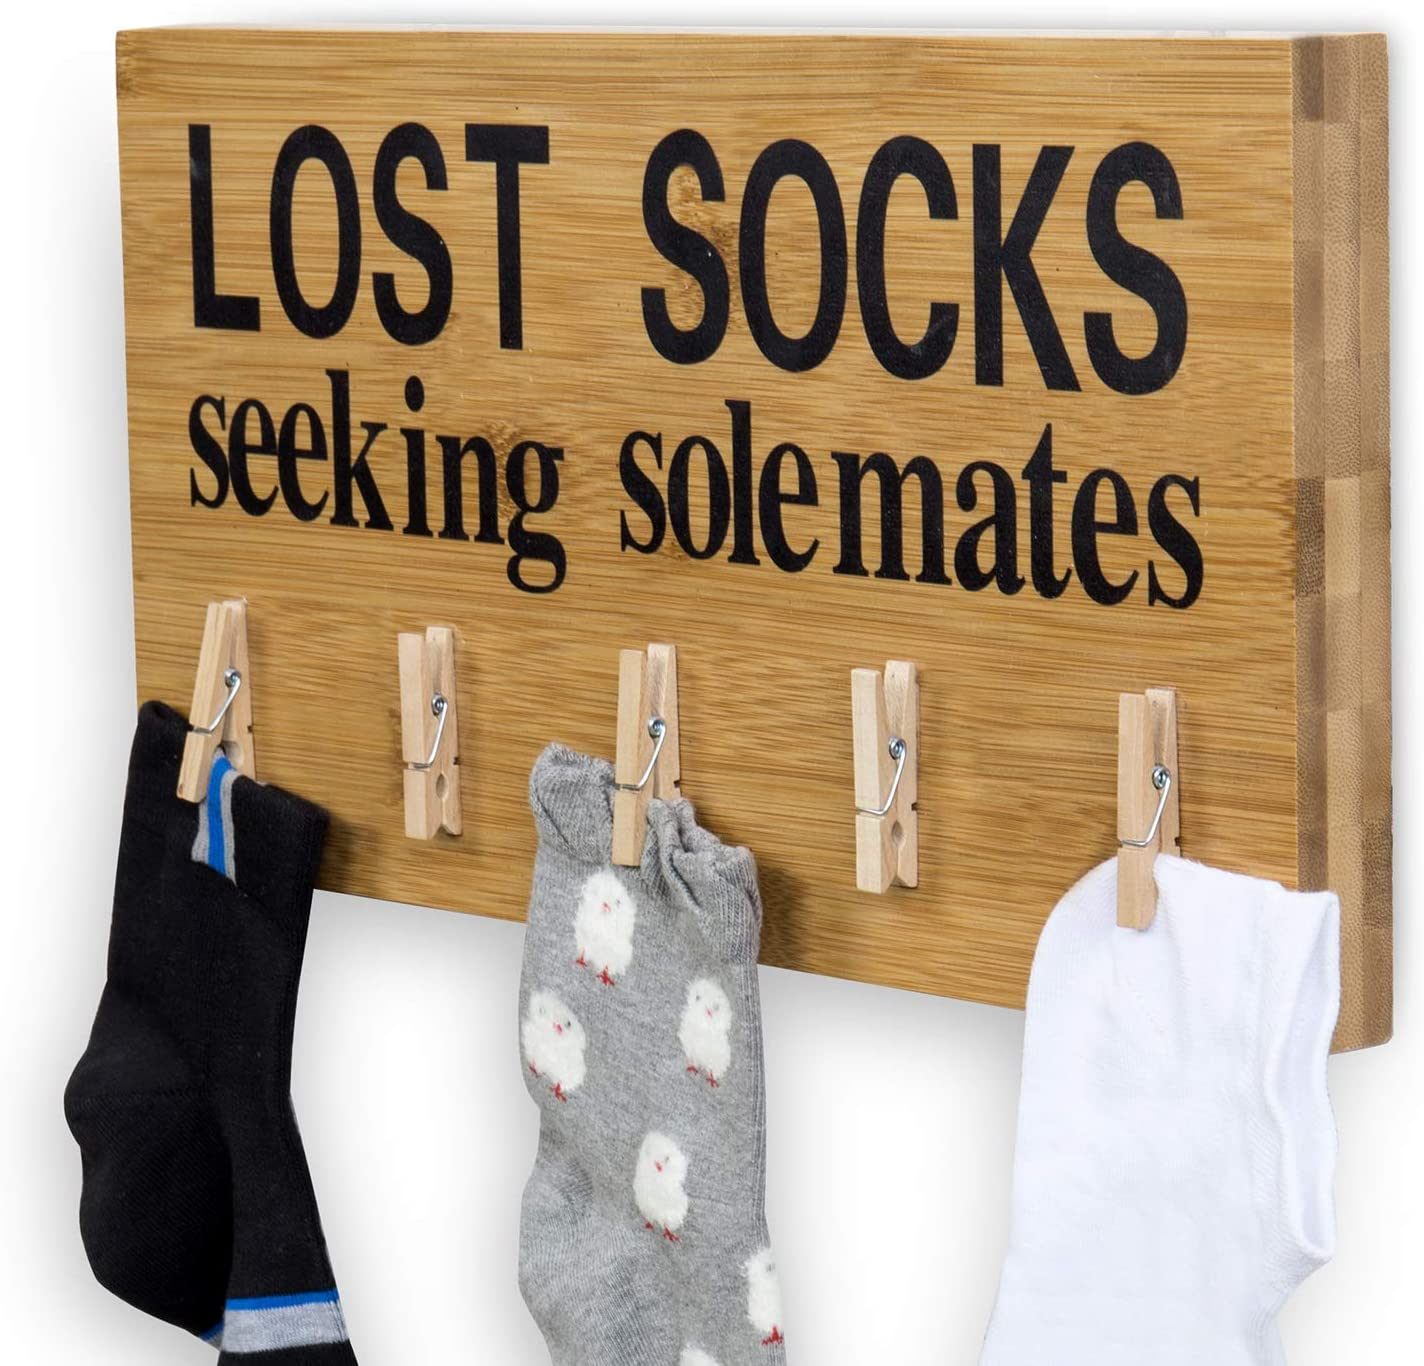 MyGift Lost Socks Seeking Solemates Natural Bamboo Laundry Room Wall Decor Sign with 5 Clothes Pins